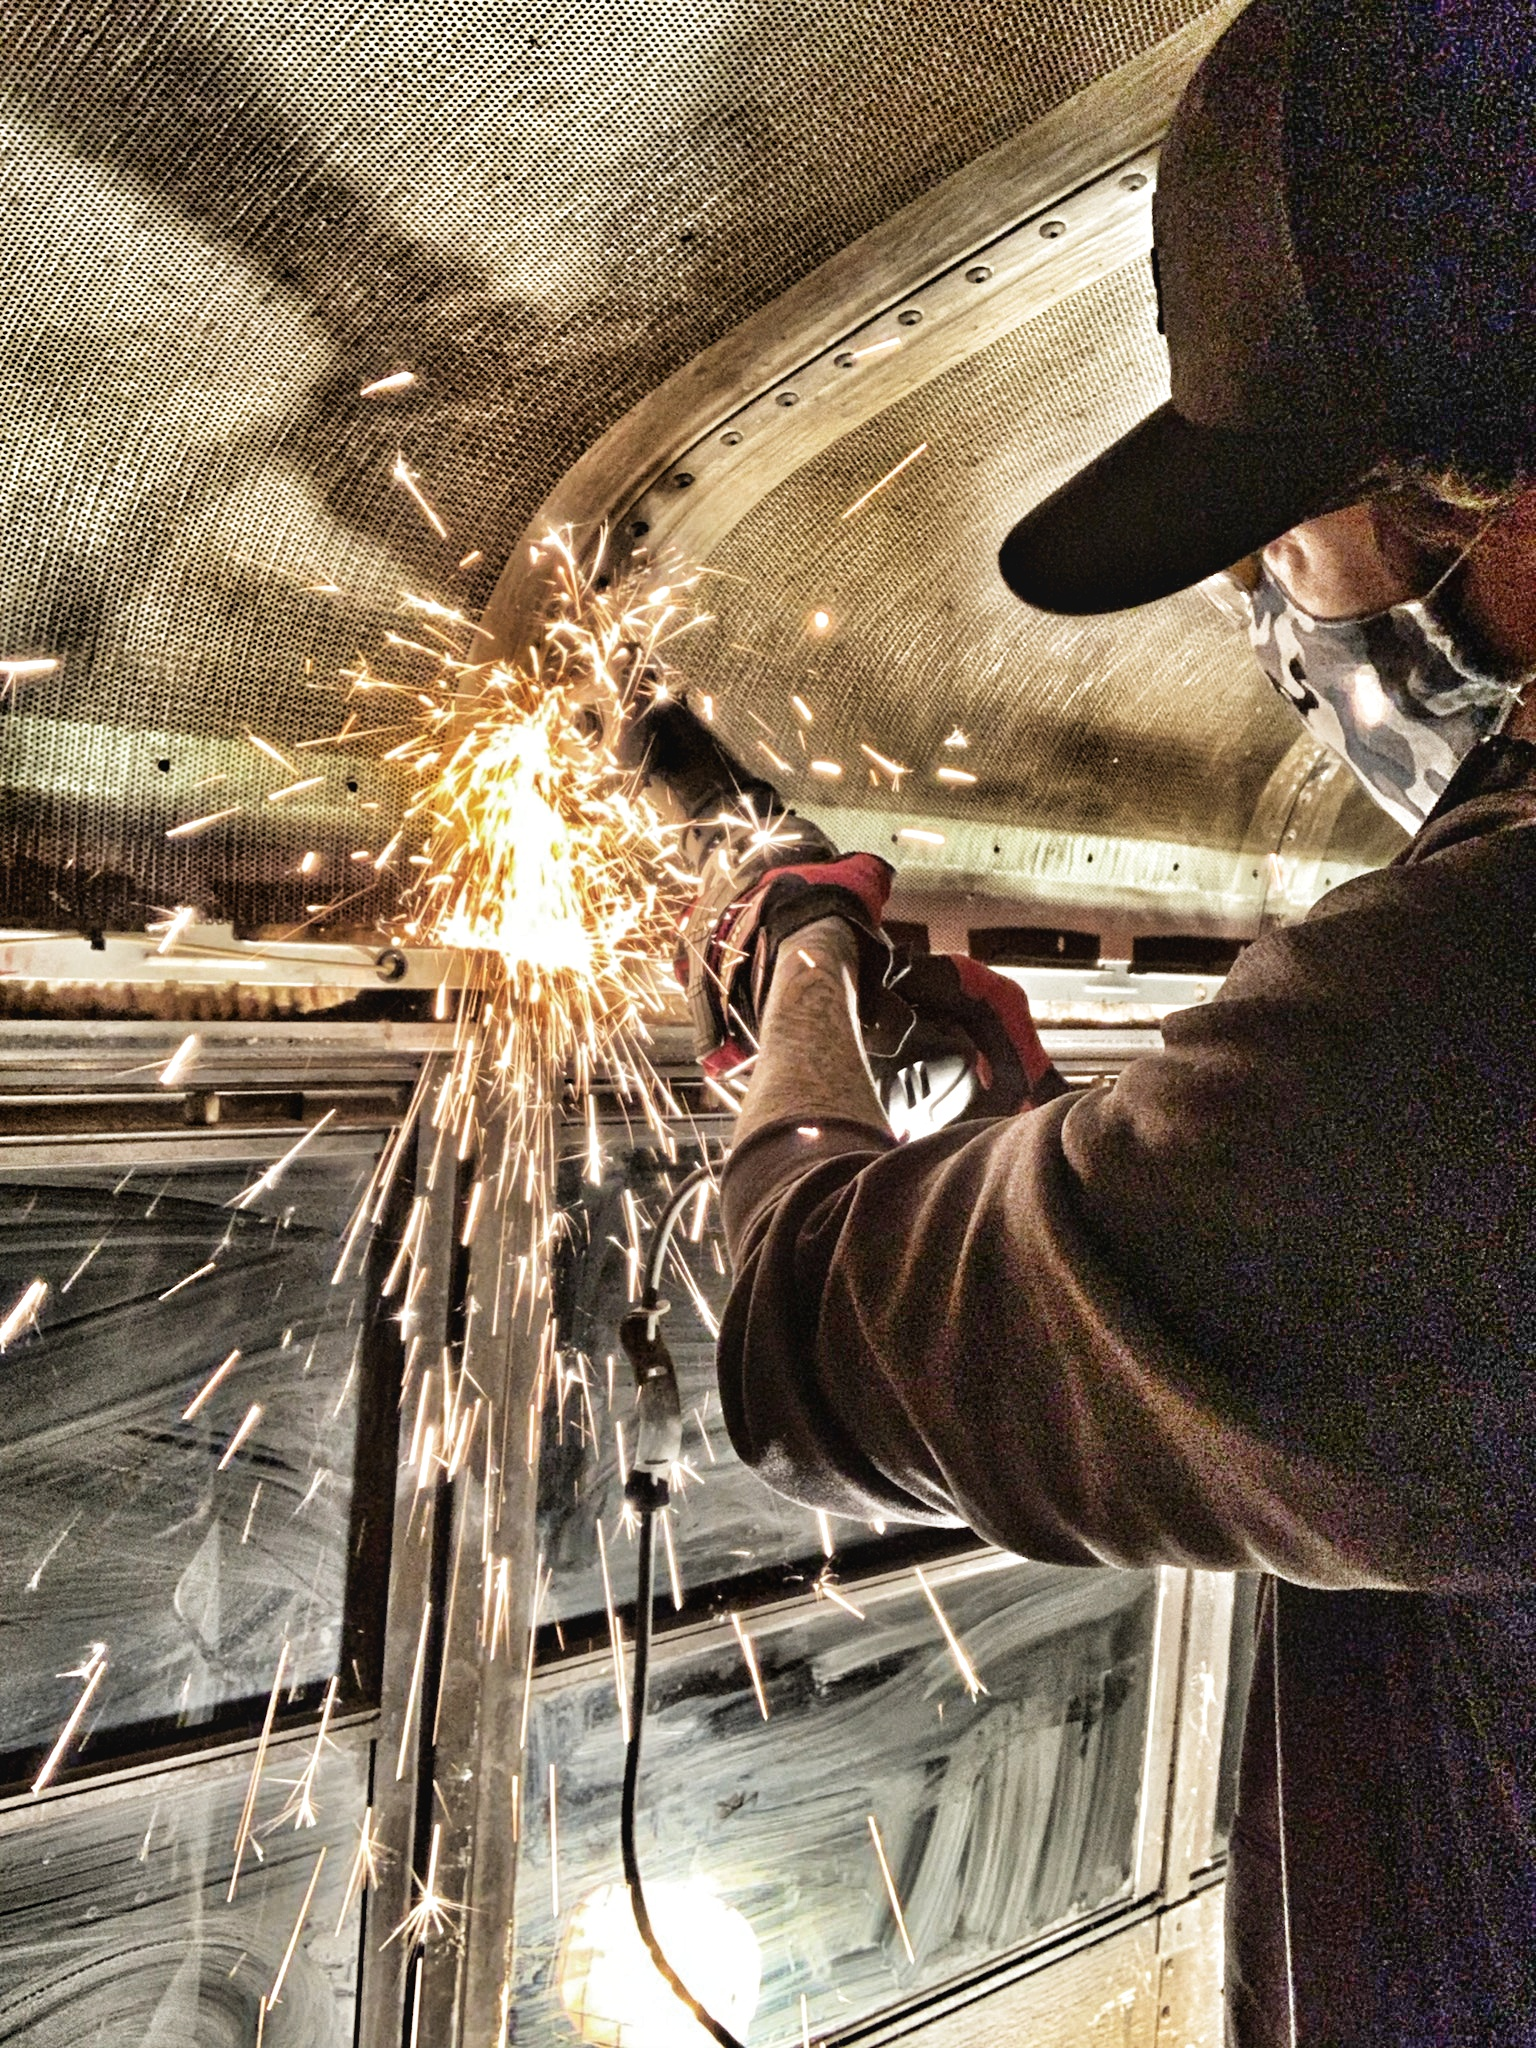 Using the angle grinder to cut grooves into each screw; sparks flying